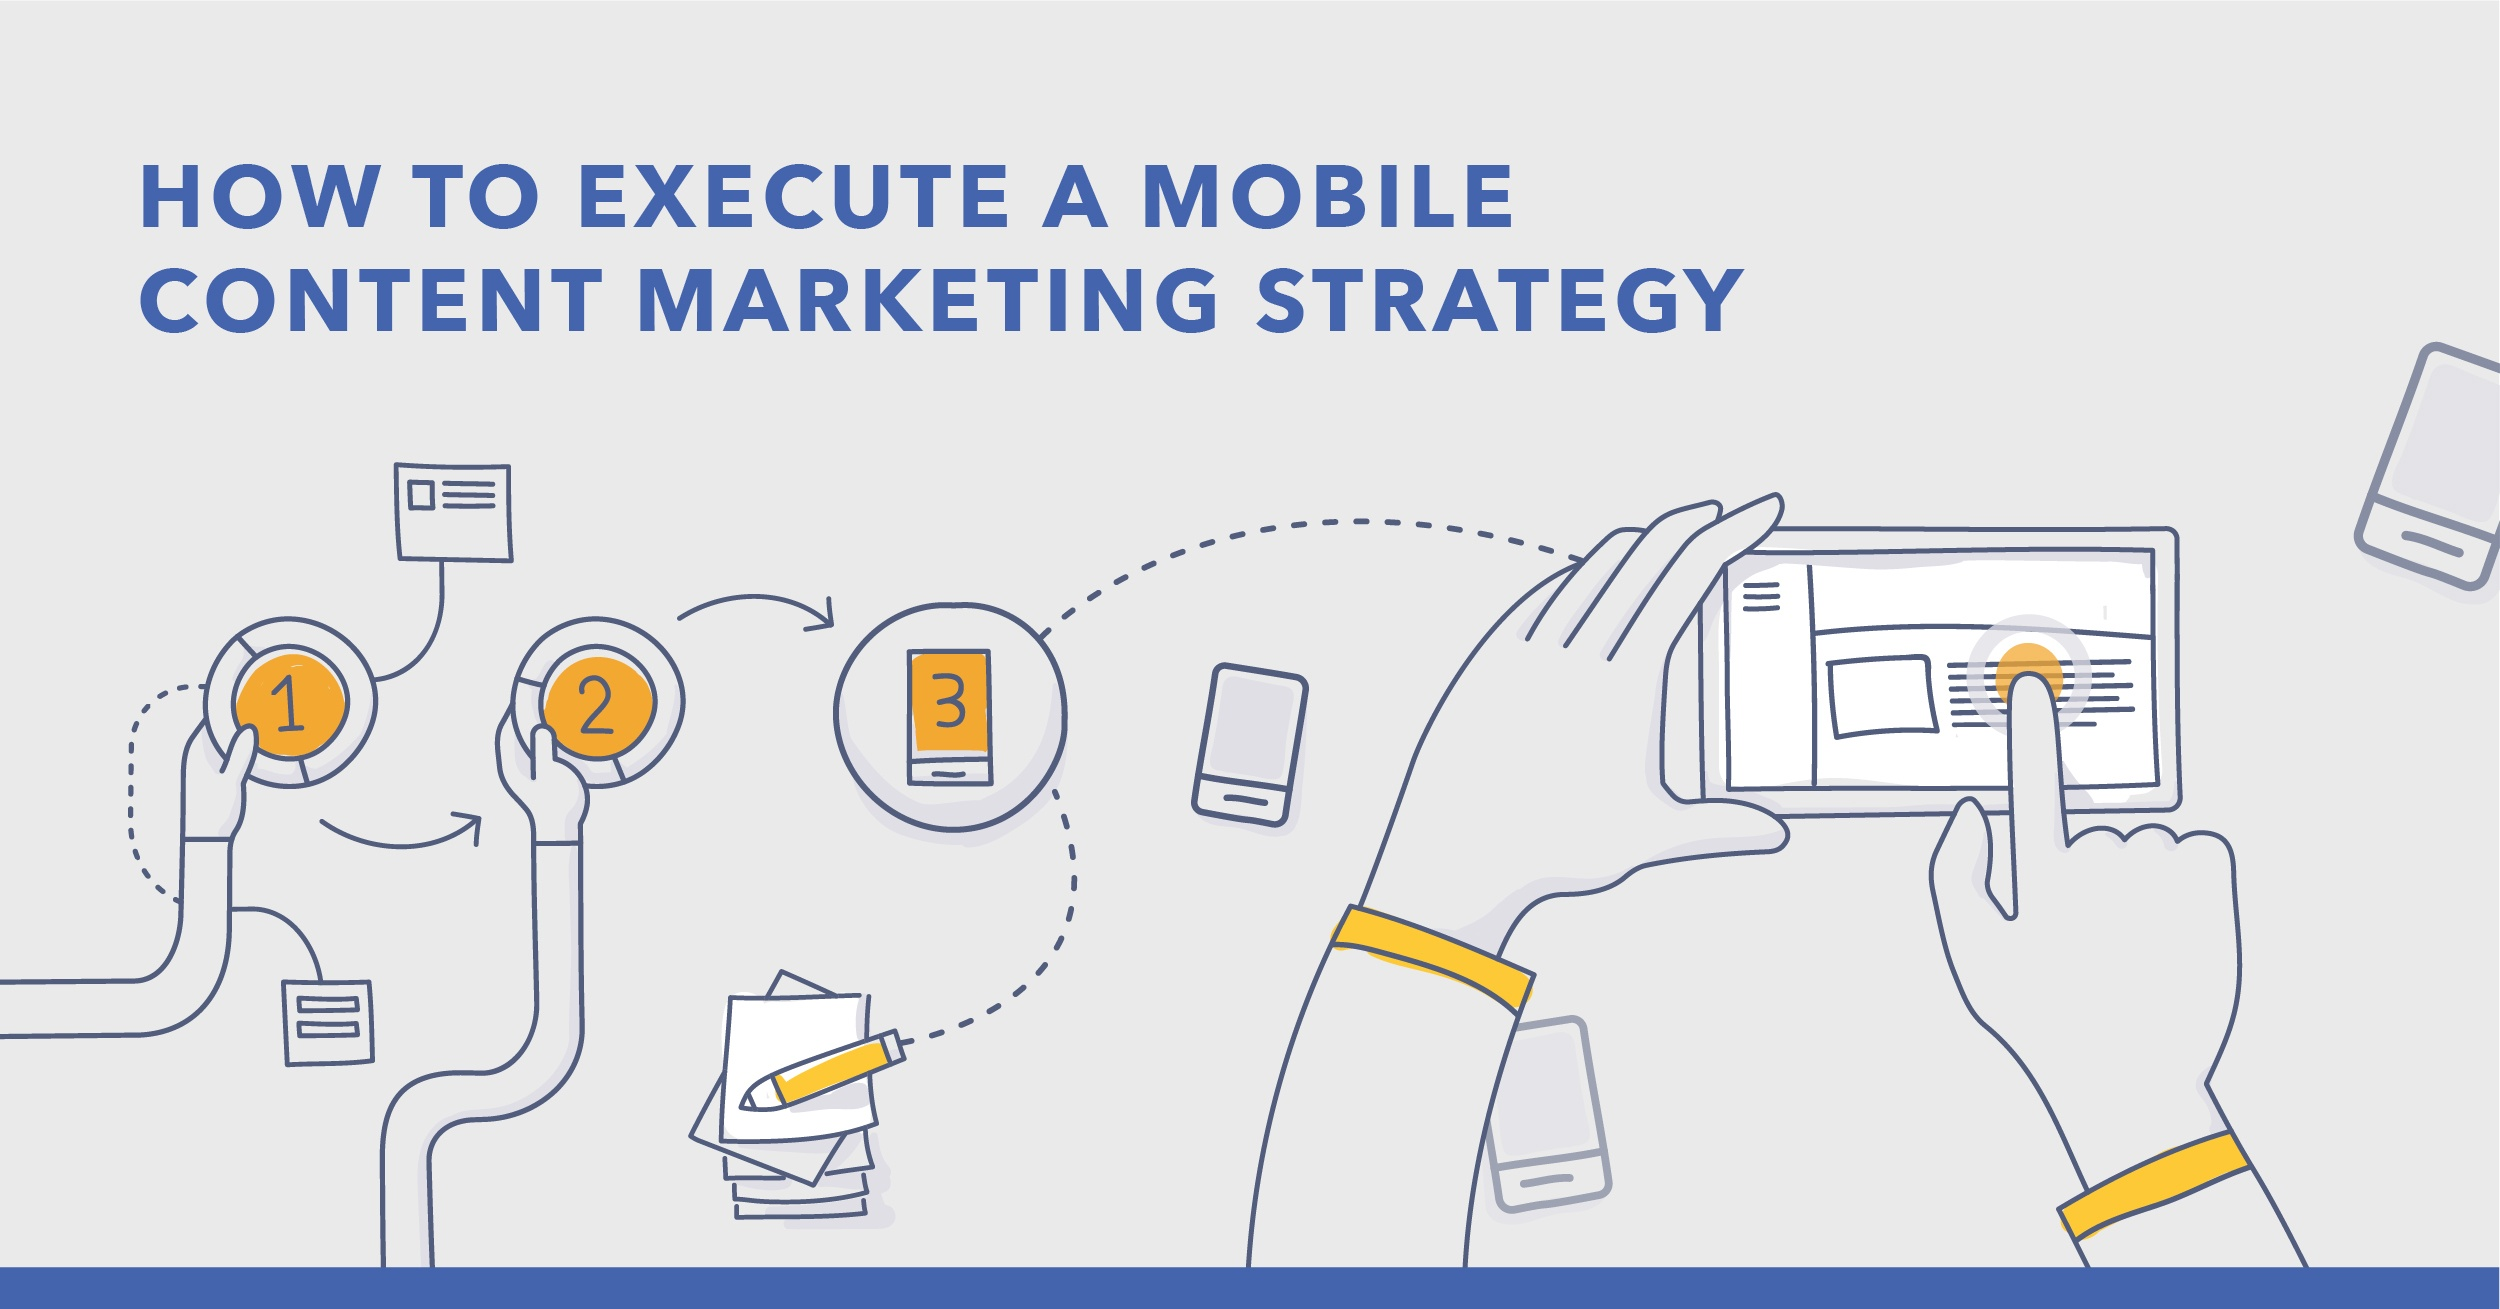 How to Create an Engaging Mobile Content Marketing Strategy - Featured Image